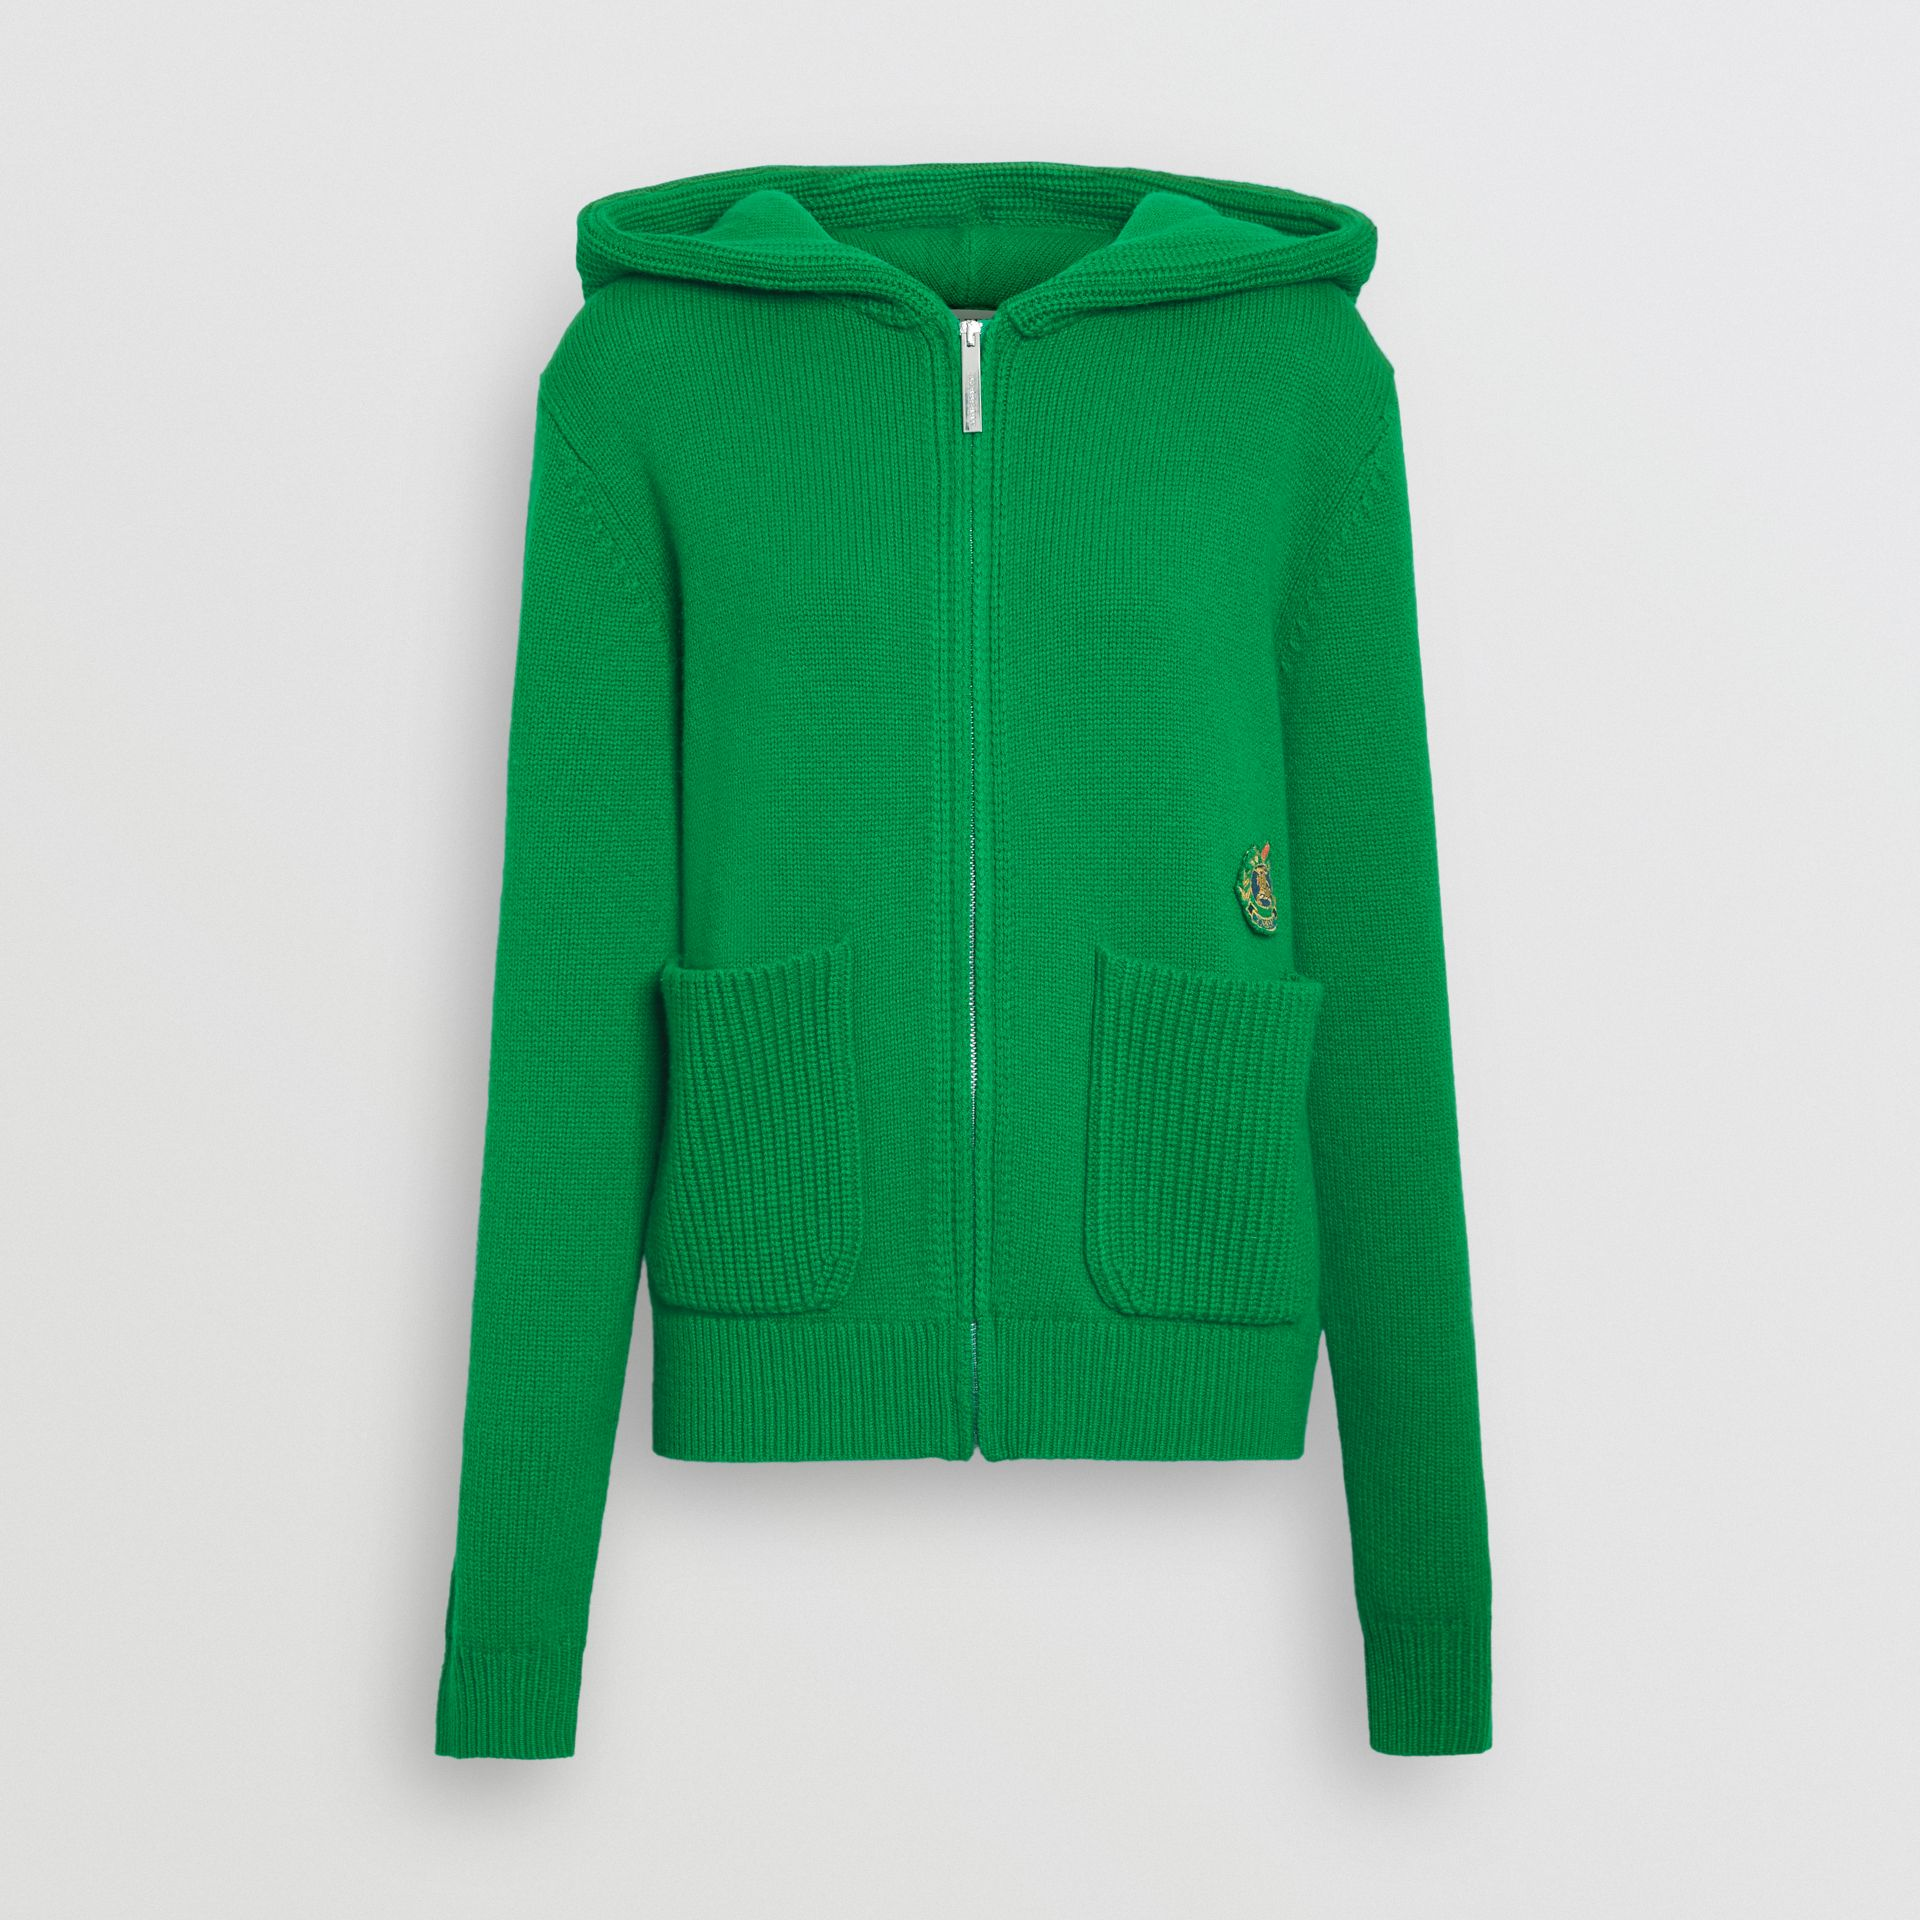 Embroidered Crest Cashmere Hooded Top in Vibrant Green - Women | Burberry - gallery image 3